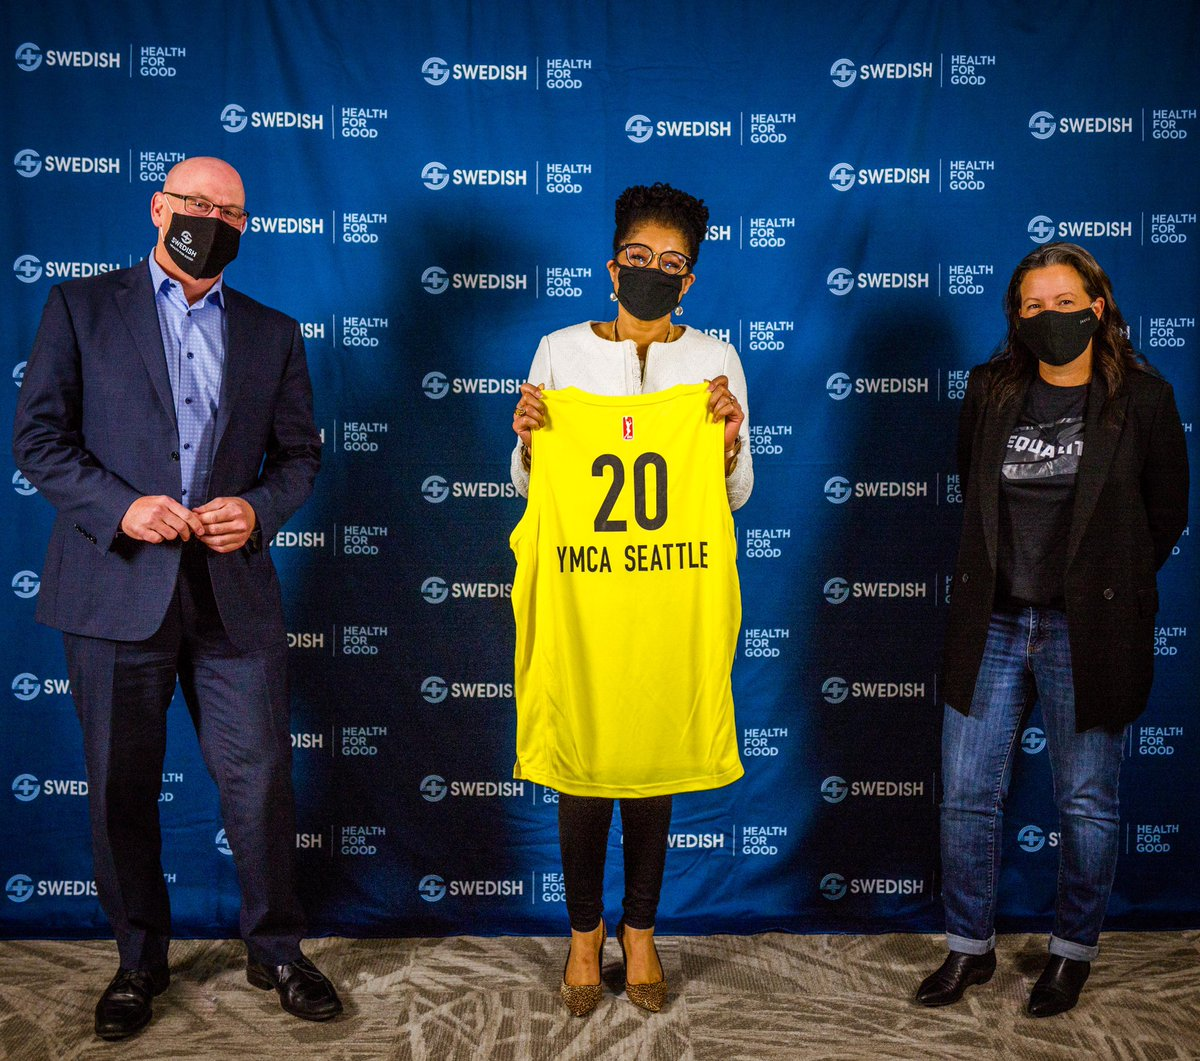 We had a great time celebrating our @Swedish Community Champions. 🏆  Together, we presented each organization with a personalized jersey and donation.   Thank you @UNCF, @YMCASeattle, @Therapywithash , Seattle Linksand Nurturing Roots for supporting our community! 👊 https://t.co/ibe780LoeU